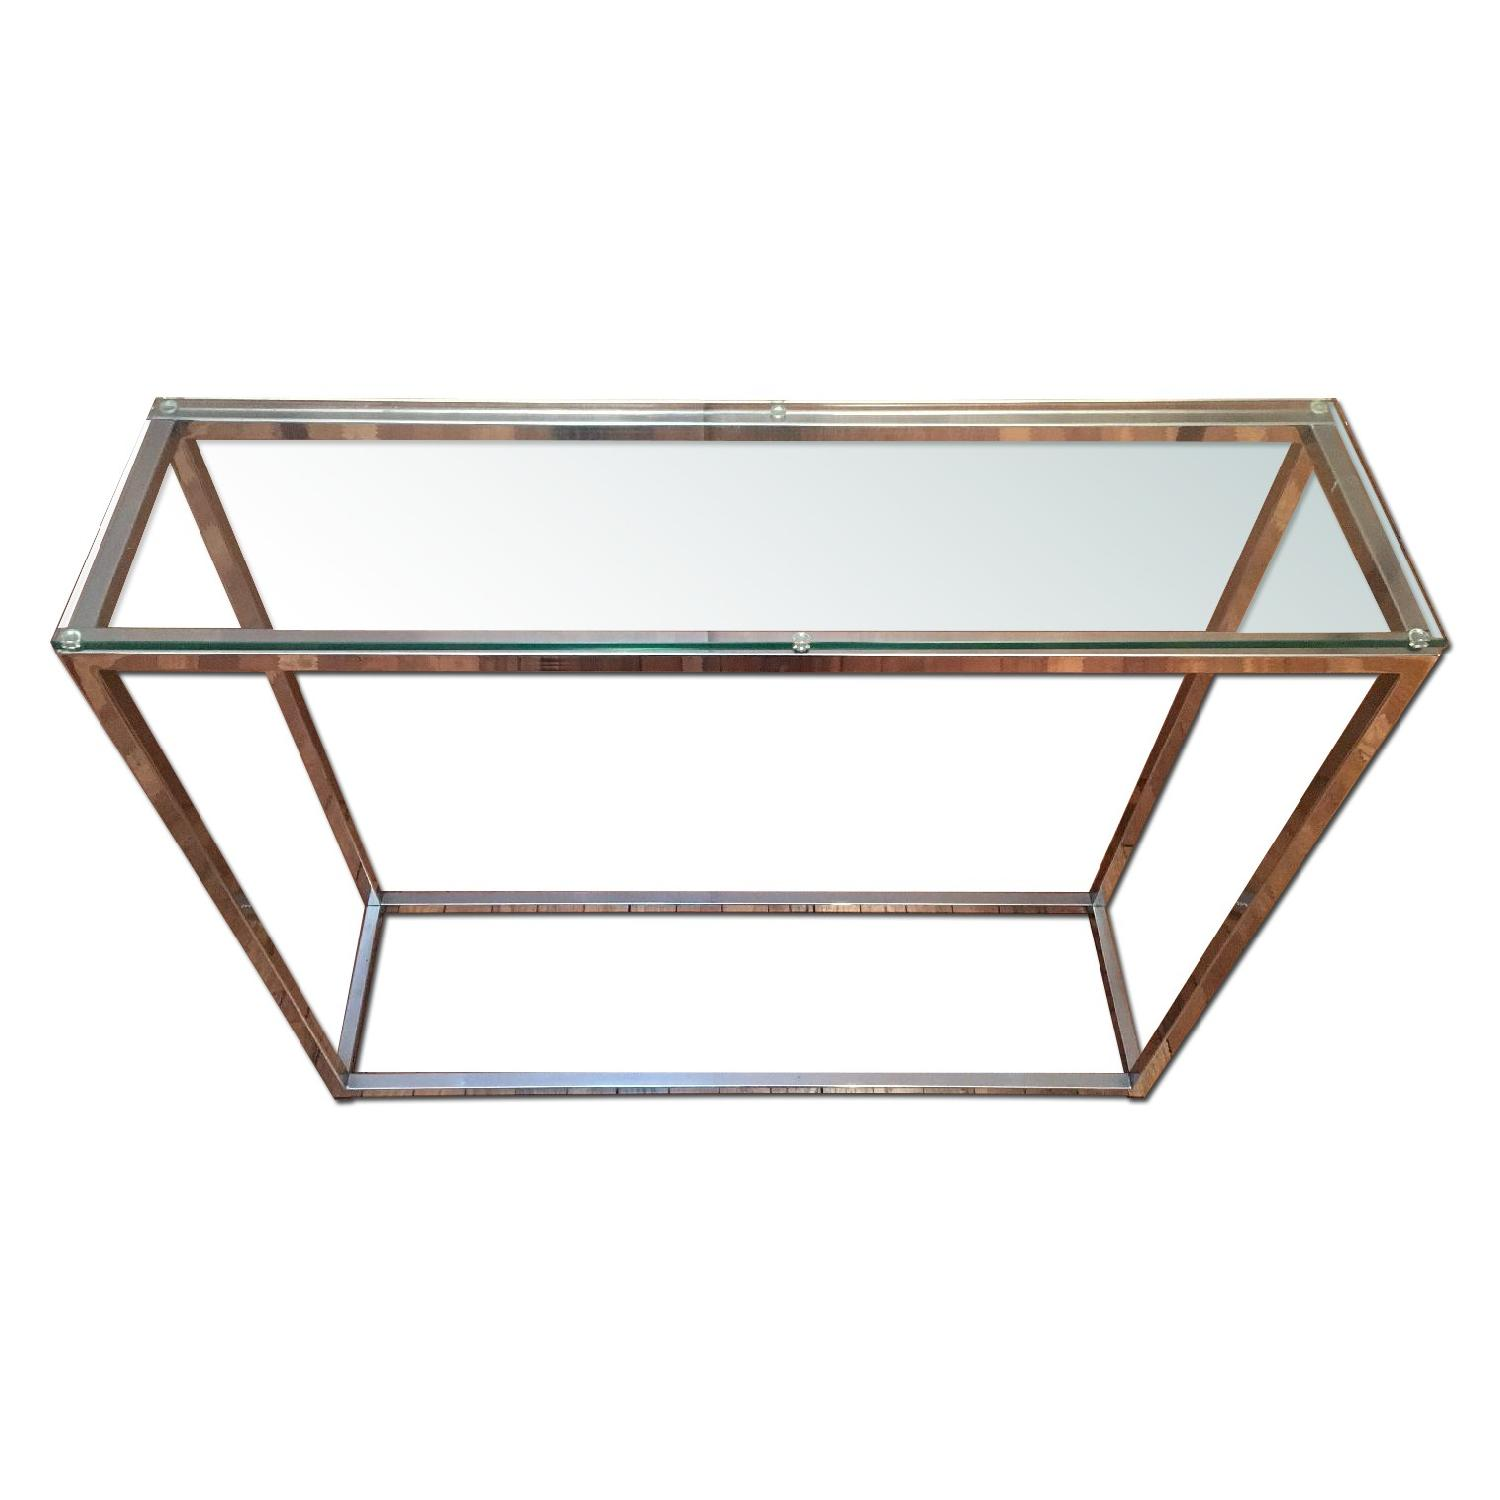 Crate & Barrel Glass Side Table - image-0